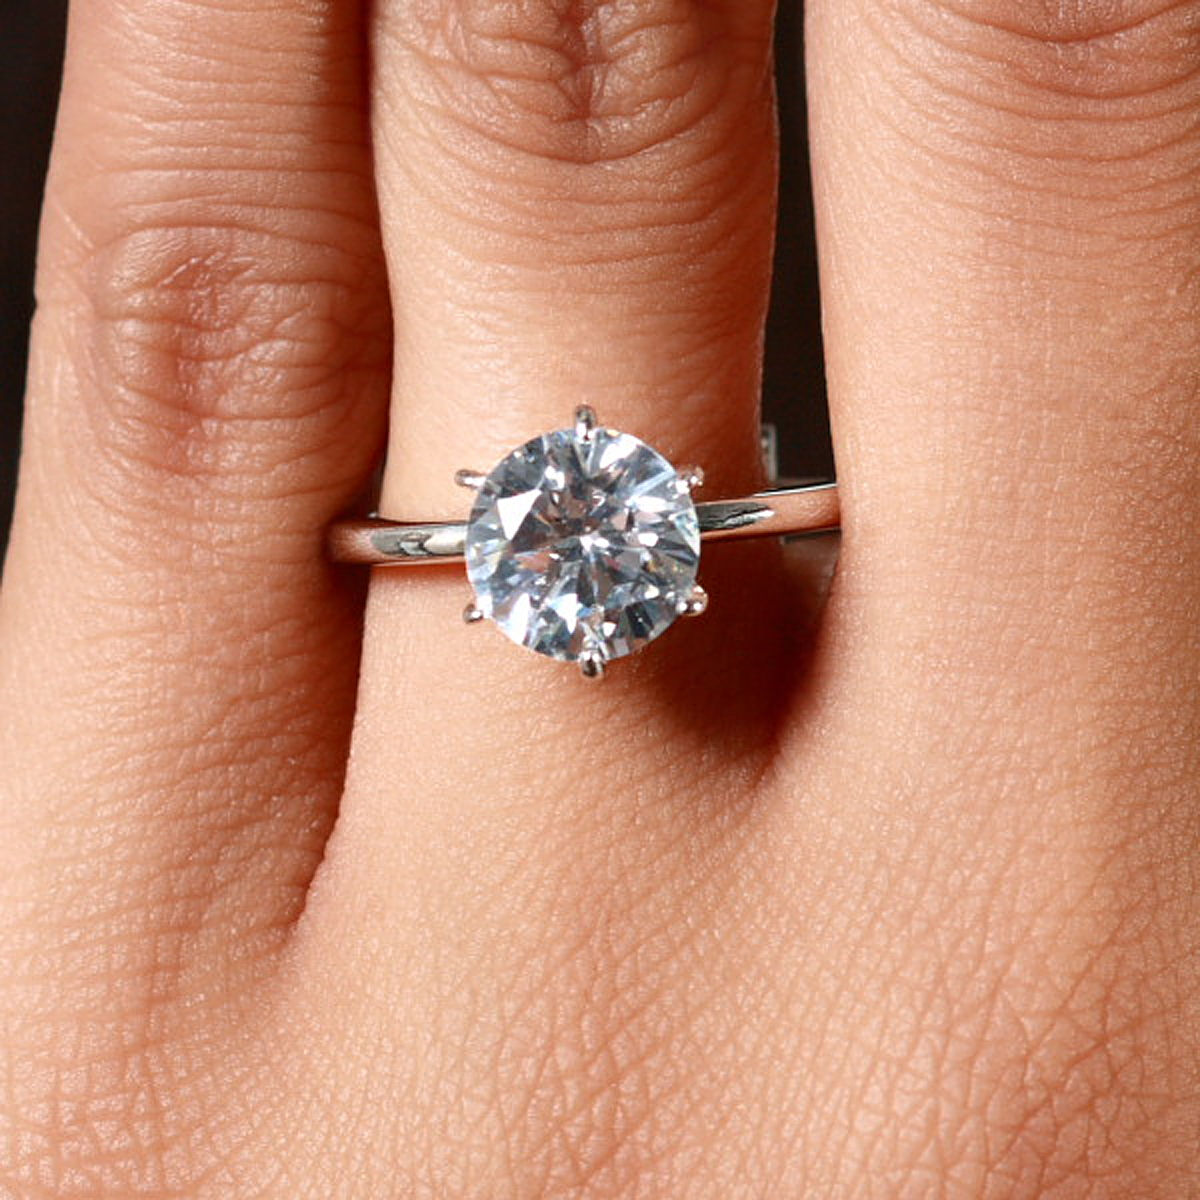 225 Carats Round Cut Cubic Zirconia Engagement Ring